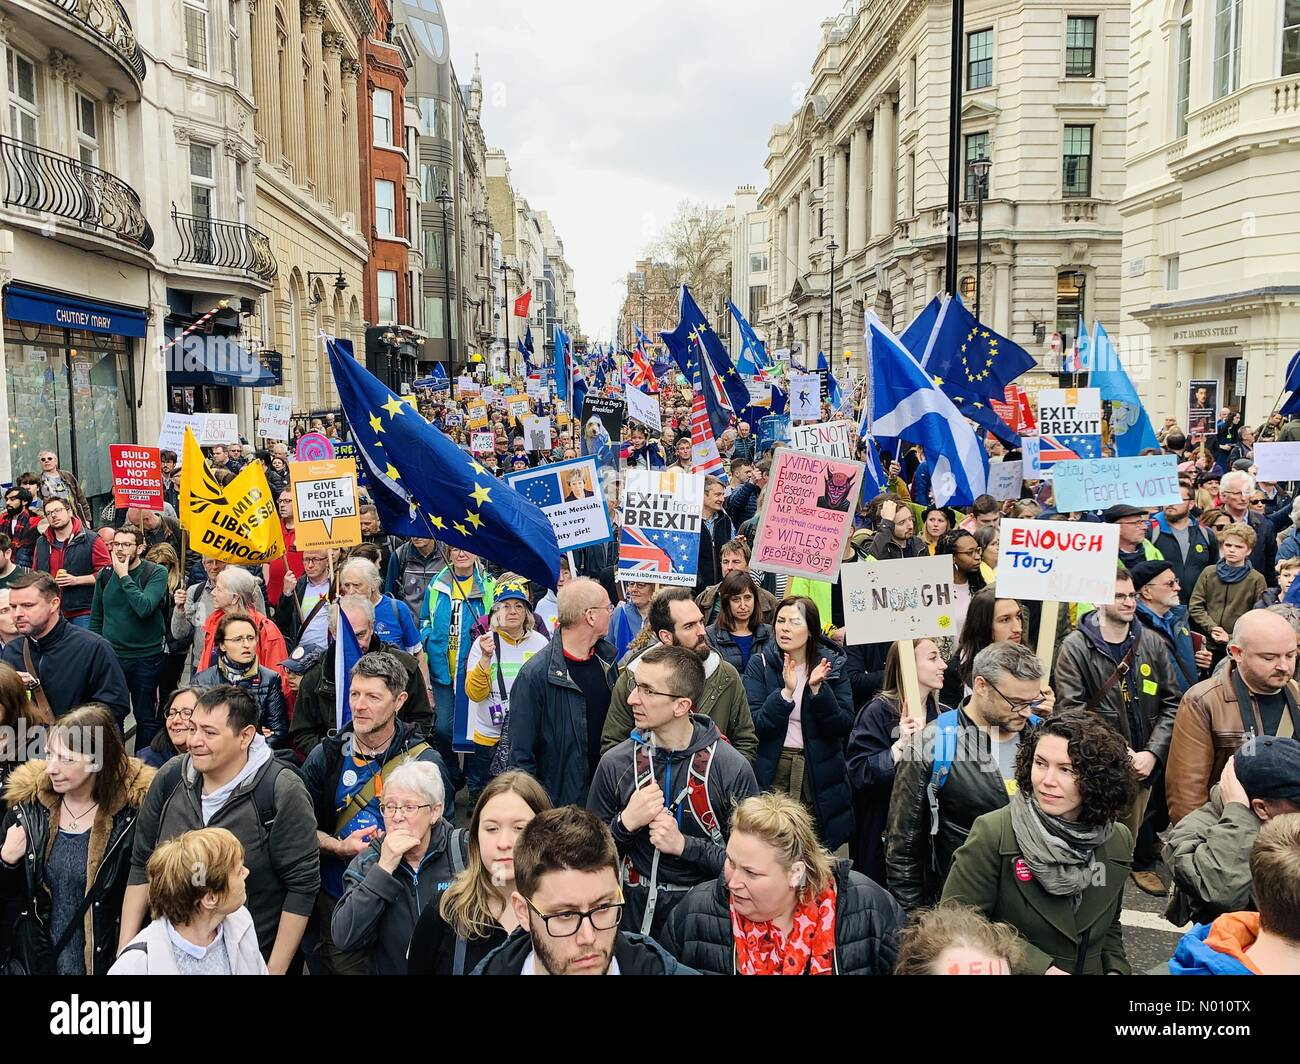 People's Vote March, London, UK, 23 March 2019 - Stock Image